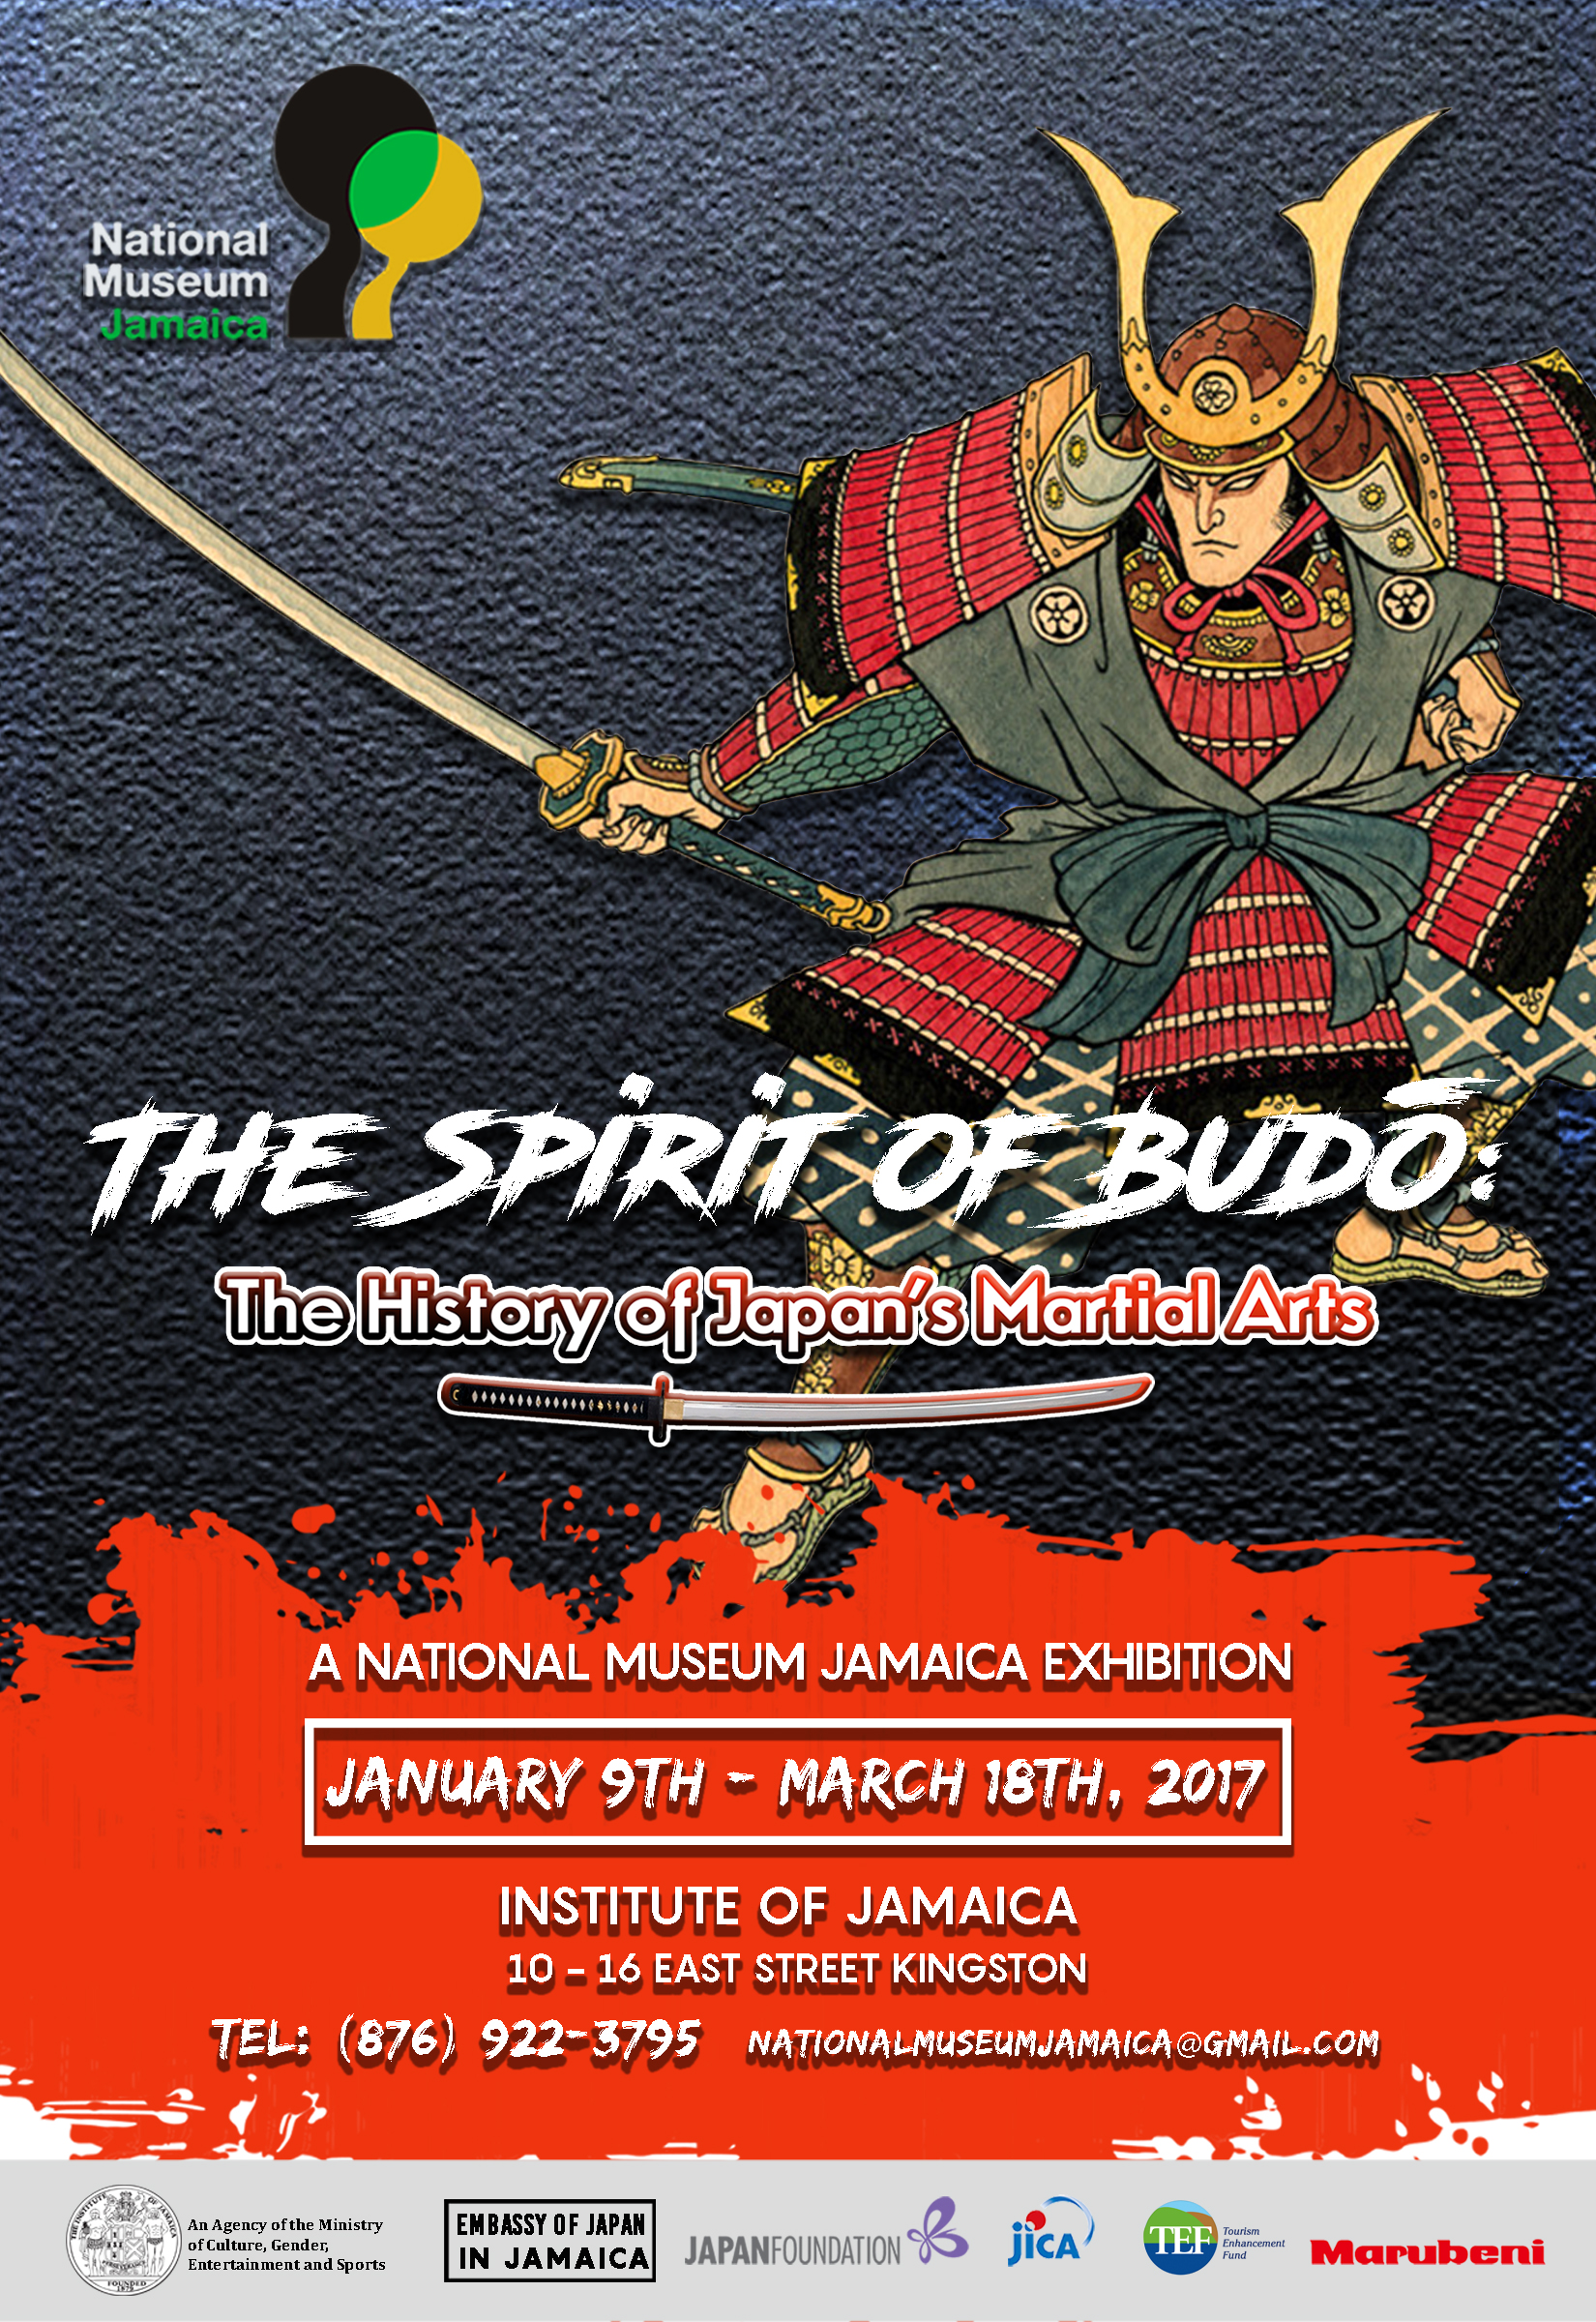 The Spirit of Budo: An Upcoming Exhibition on the History of